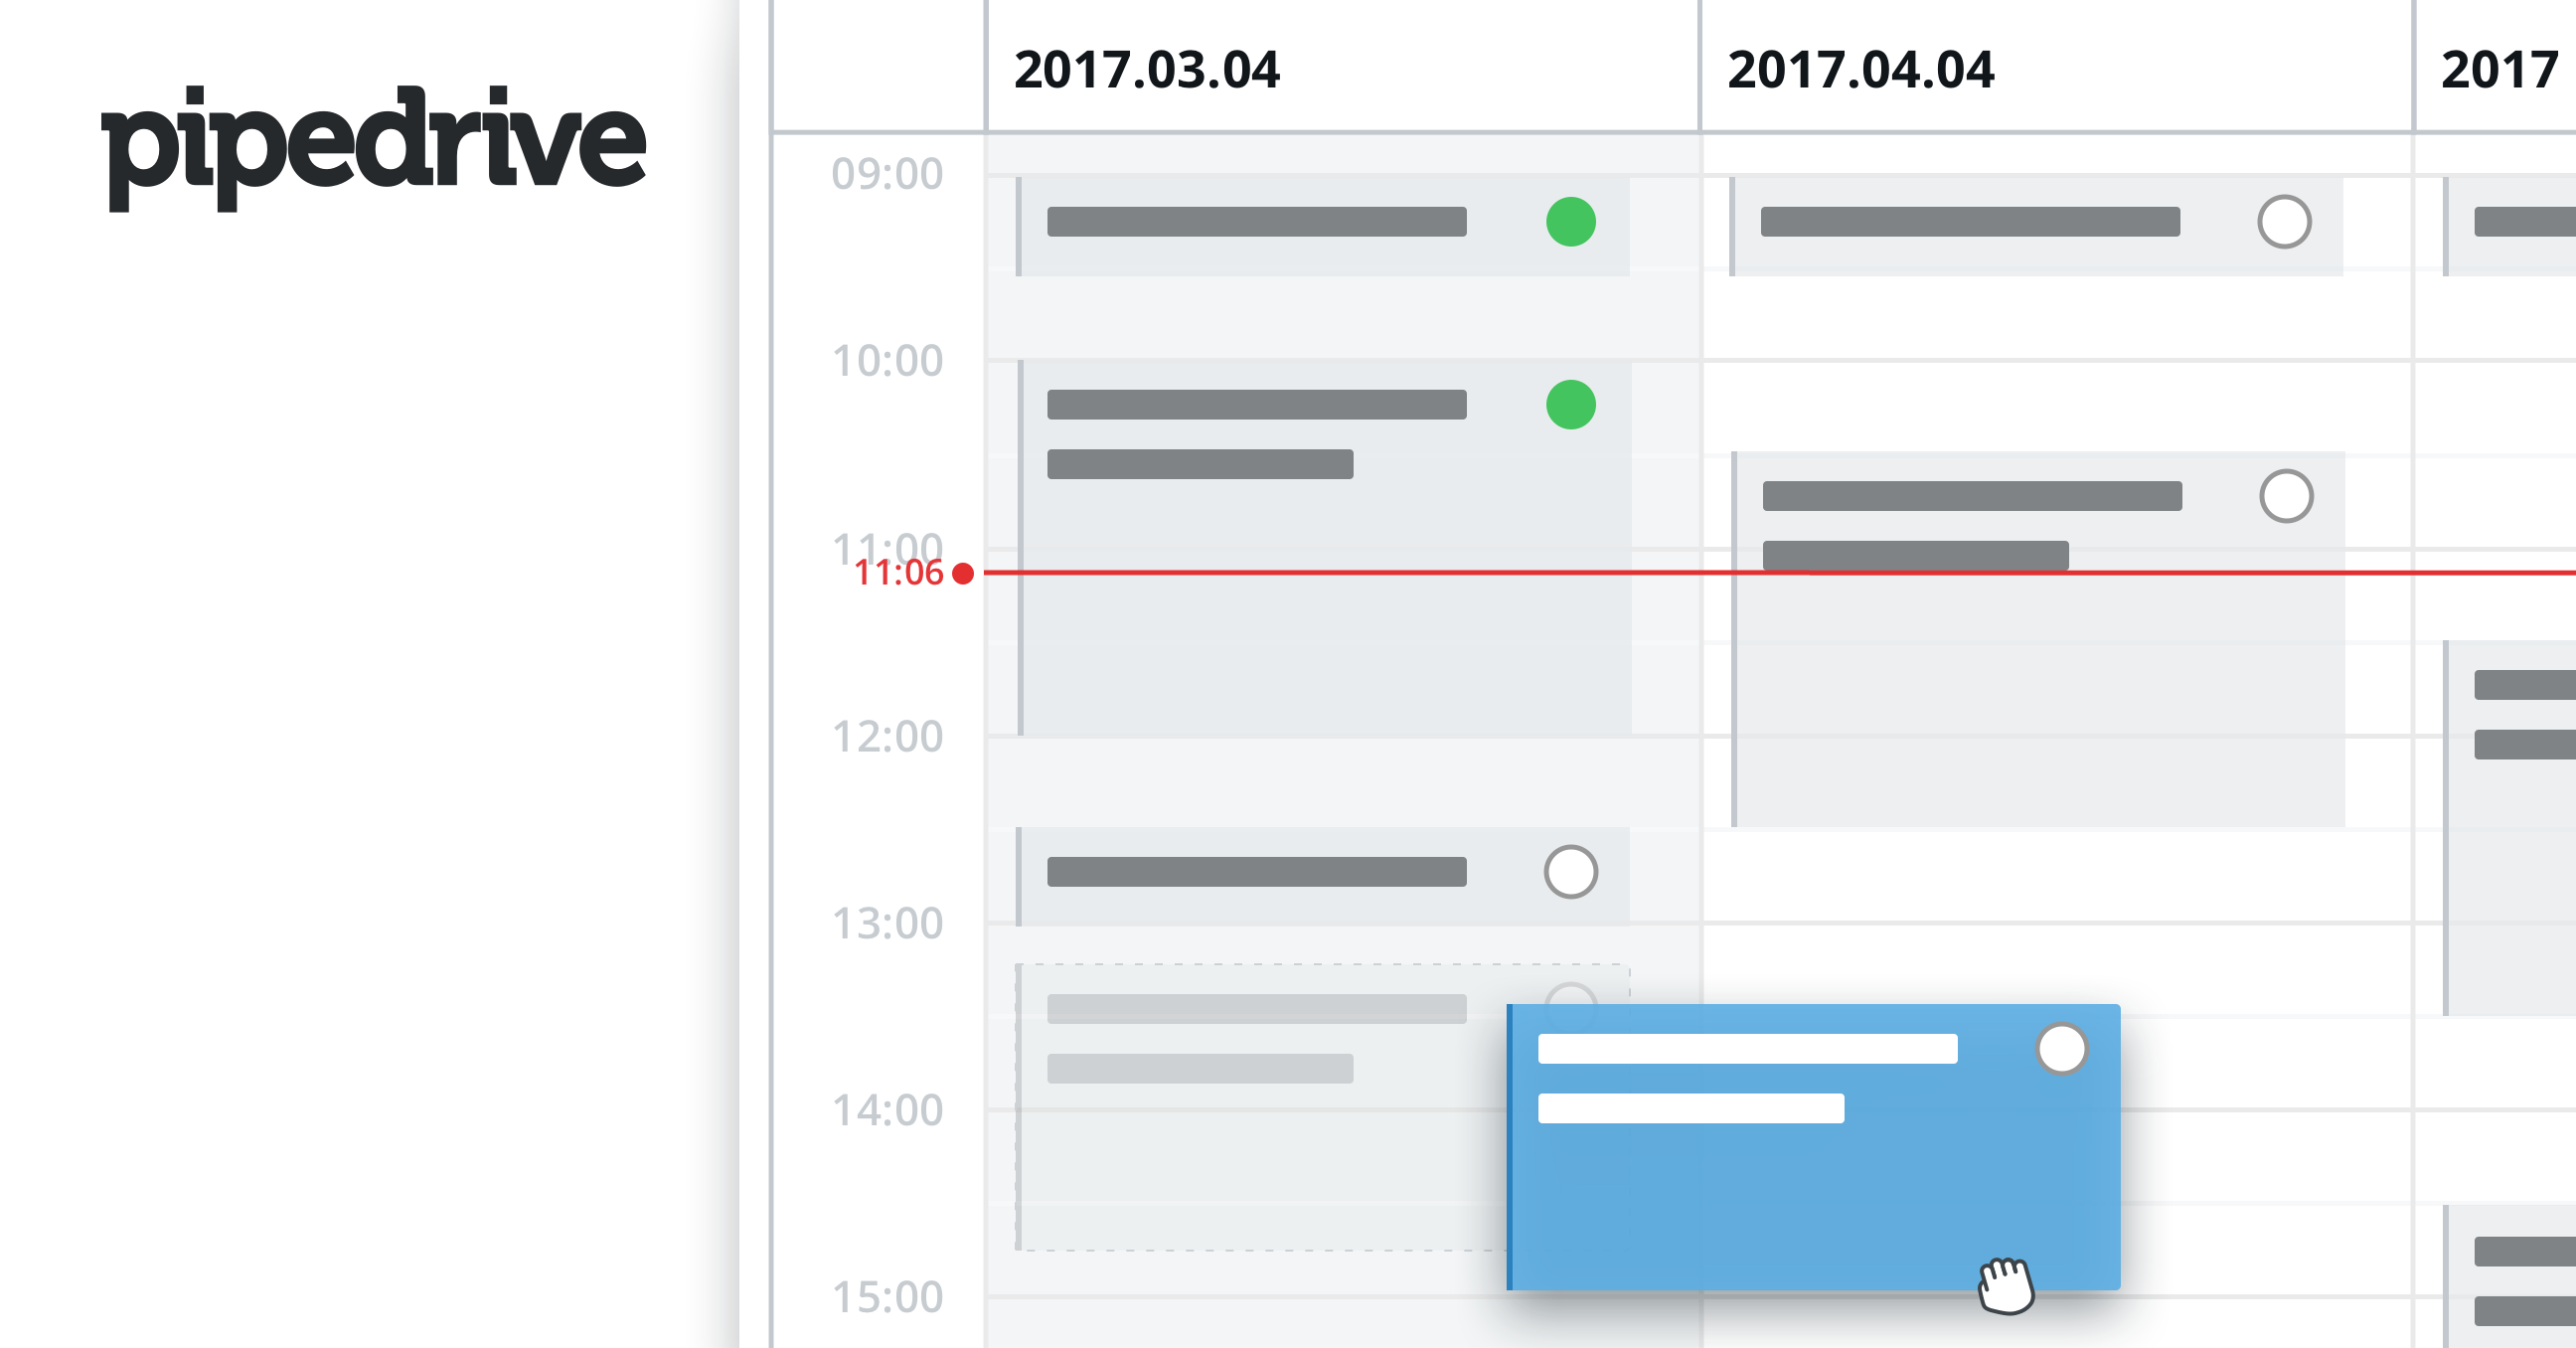 Pipedrive Activity Calendar View